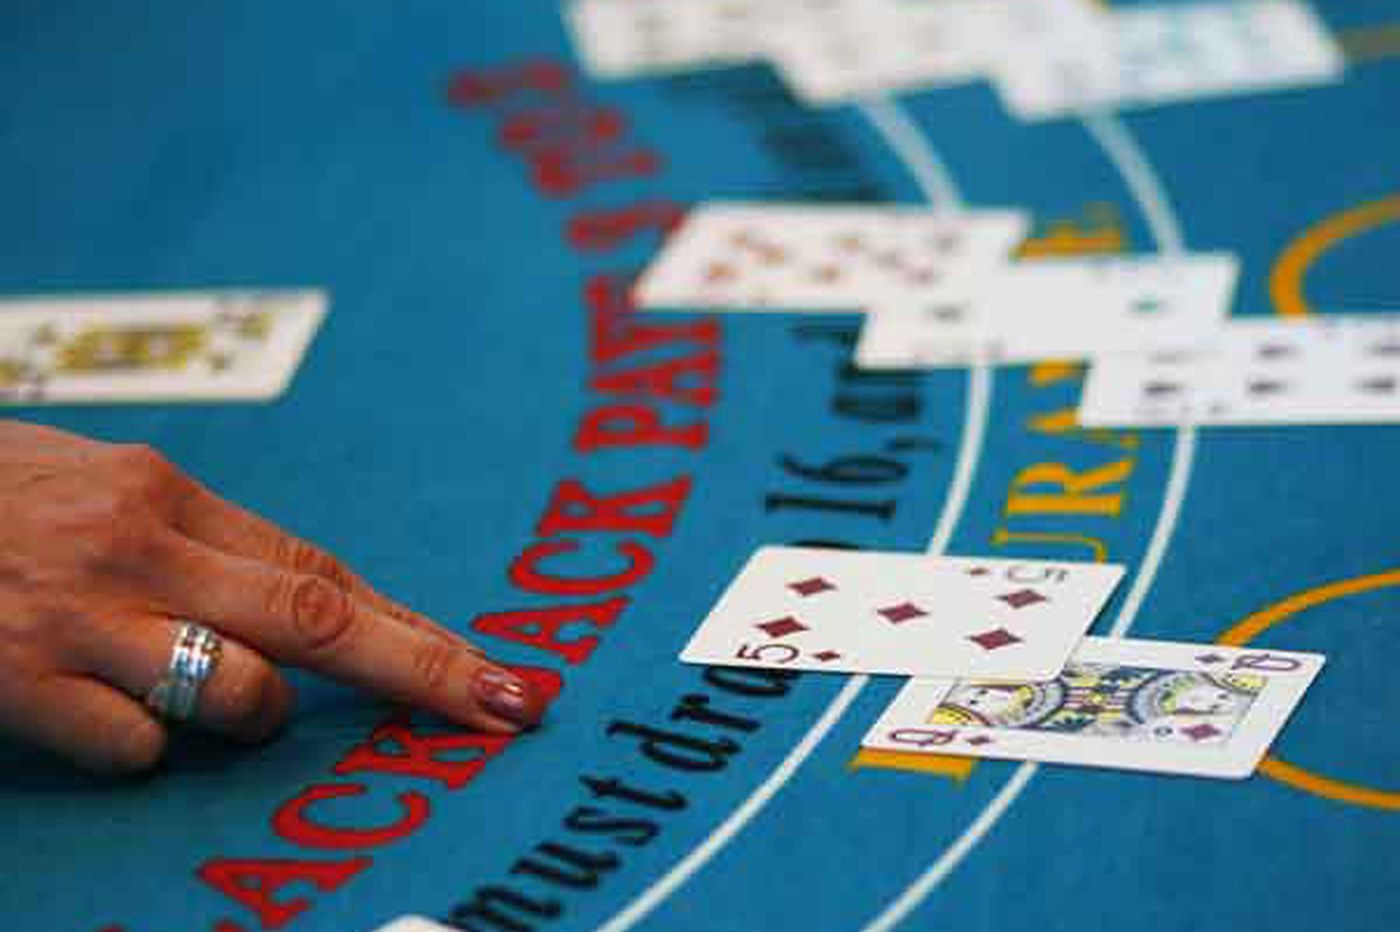 Policing gamblers who can't police themselves isn't easy